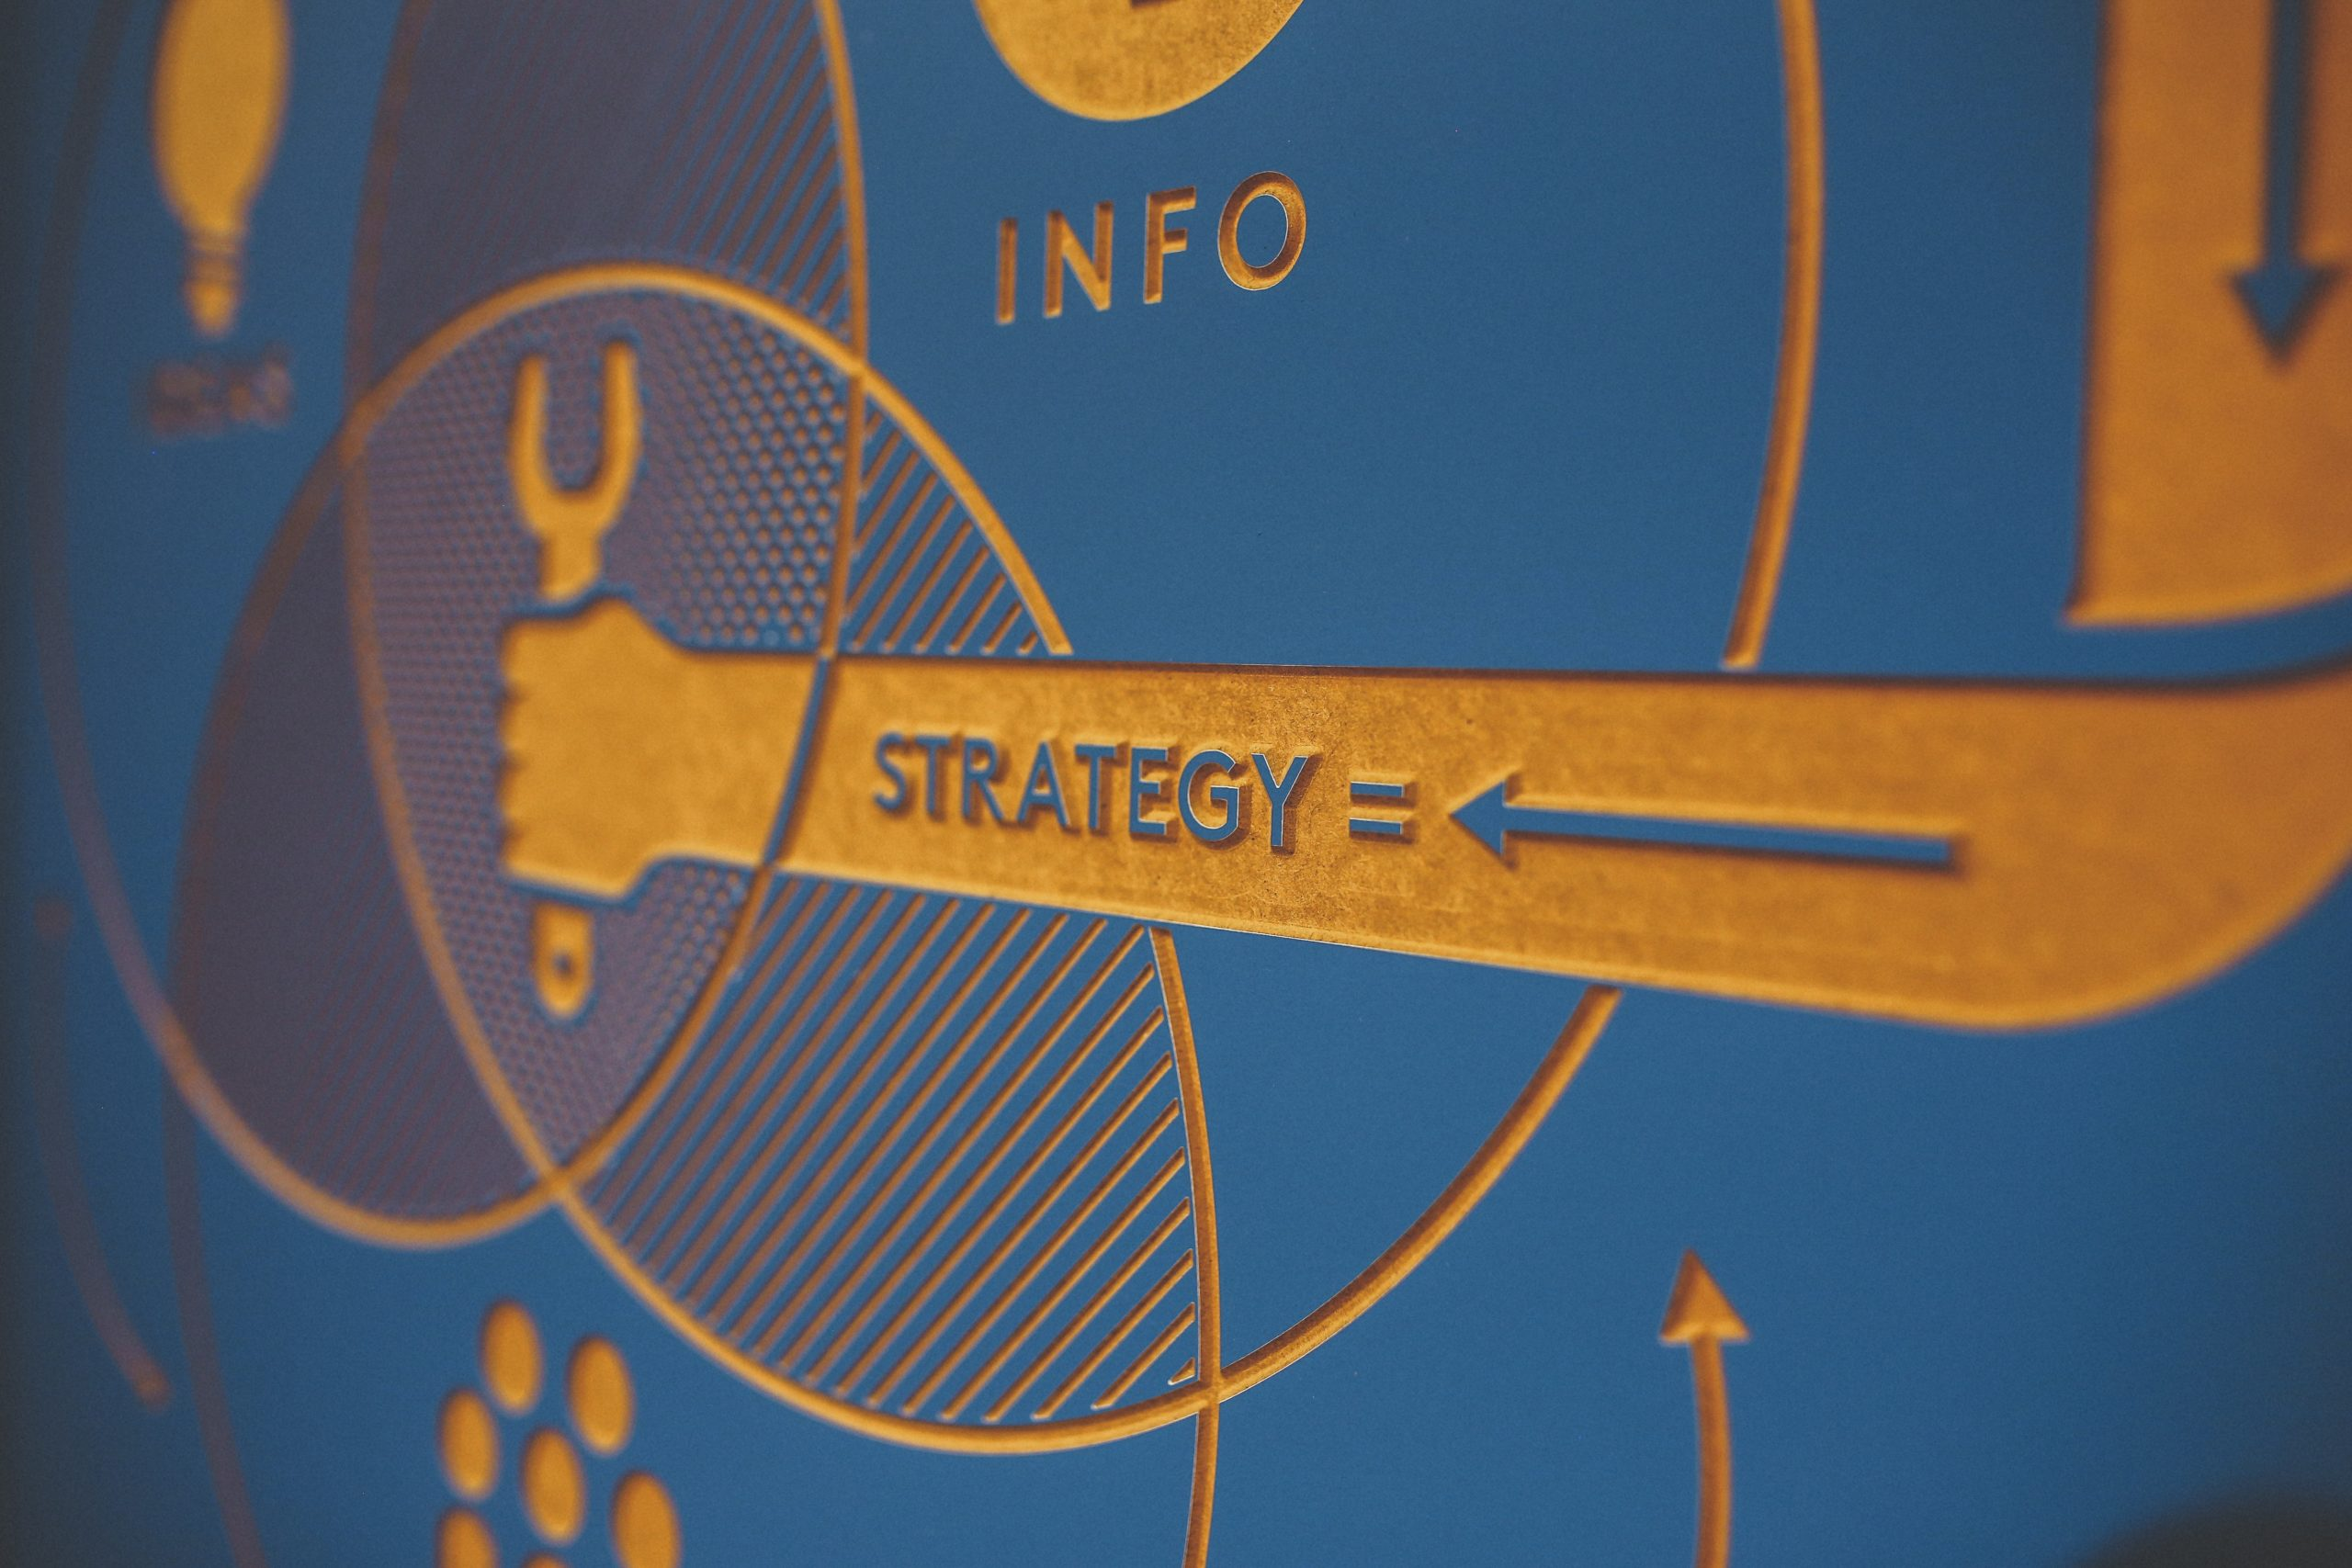 How to choose your b2b go-to-market strategy